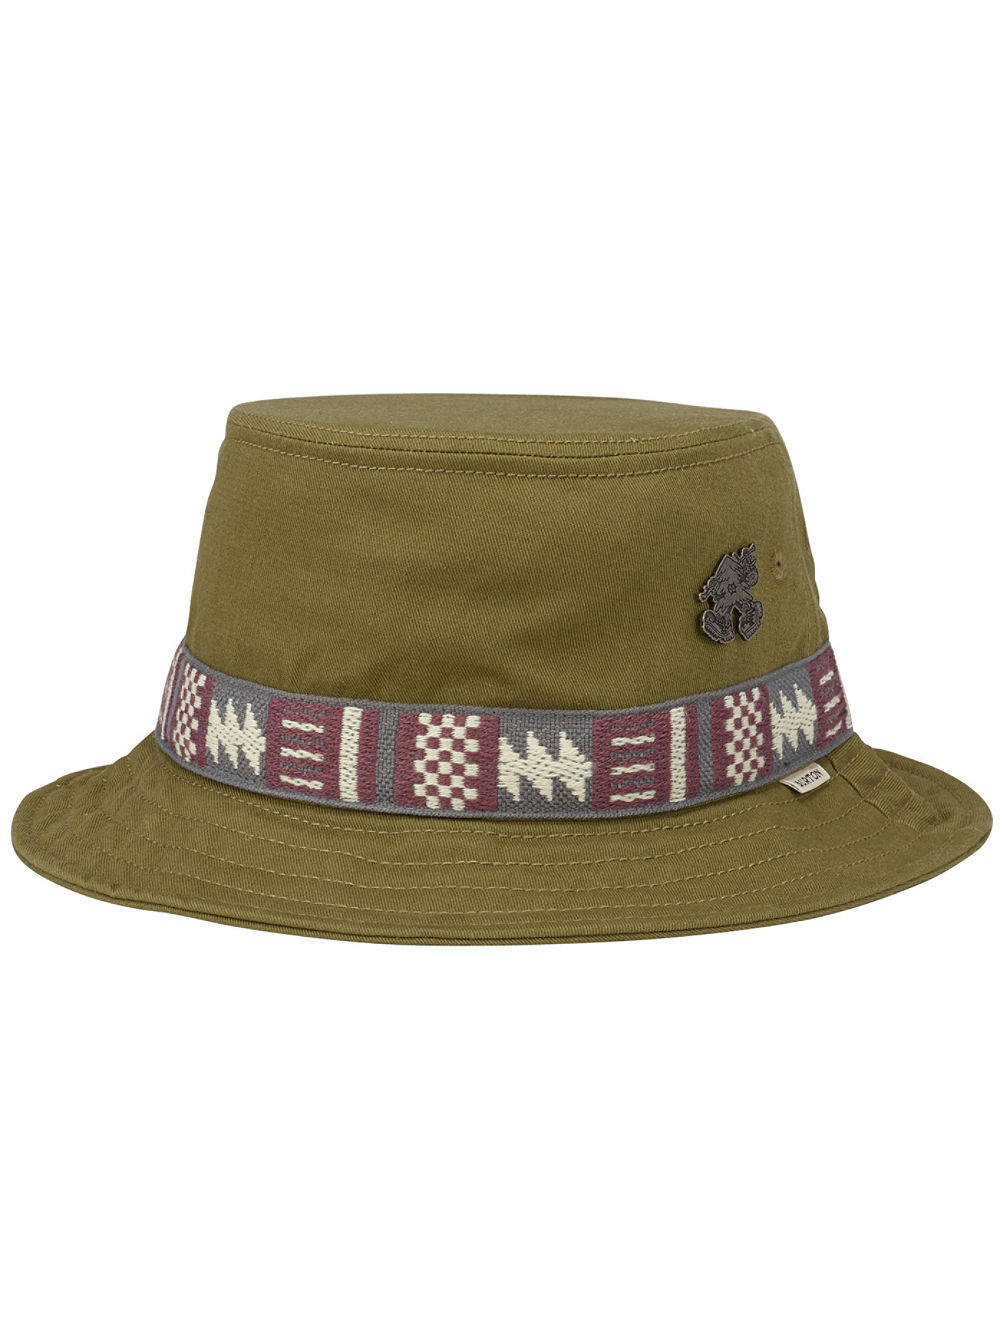 Thompson Bucket Hat